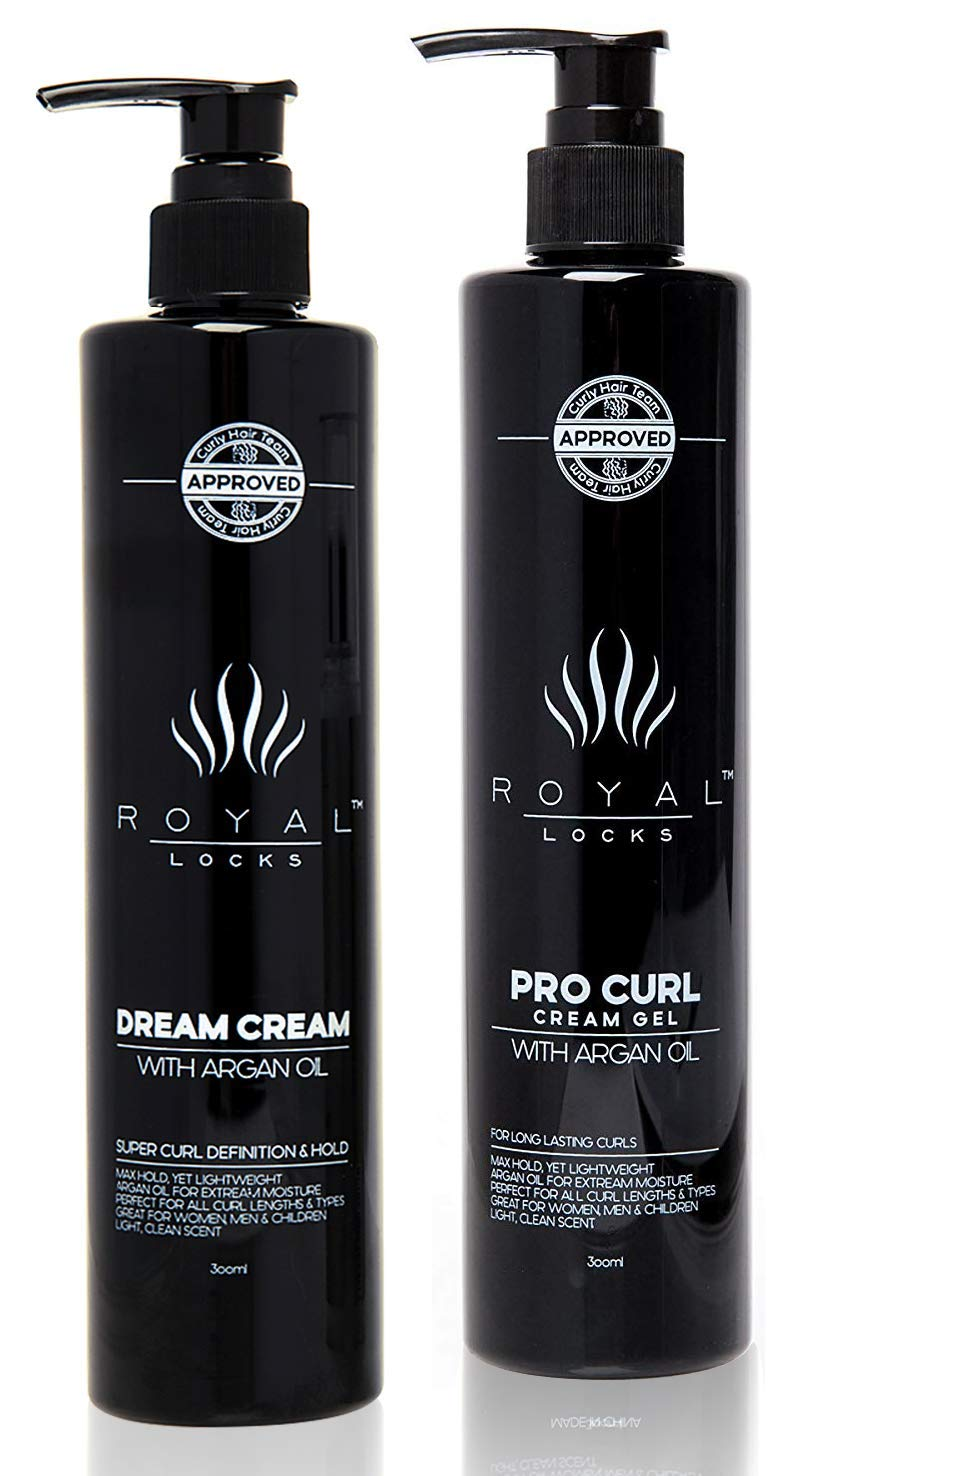 Royal Locks Pro Curl Cream Gel and Dream Cream   Defining Cream Gel Set for Definition, Strong Hold, Frizz Reduction of Curly and Wavy Hair   with Argan Oil   2 pack of 10 Oz ea